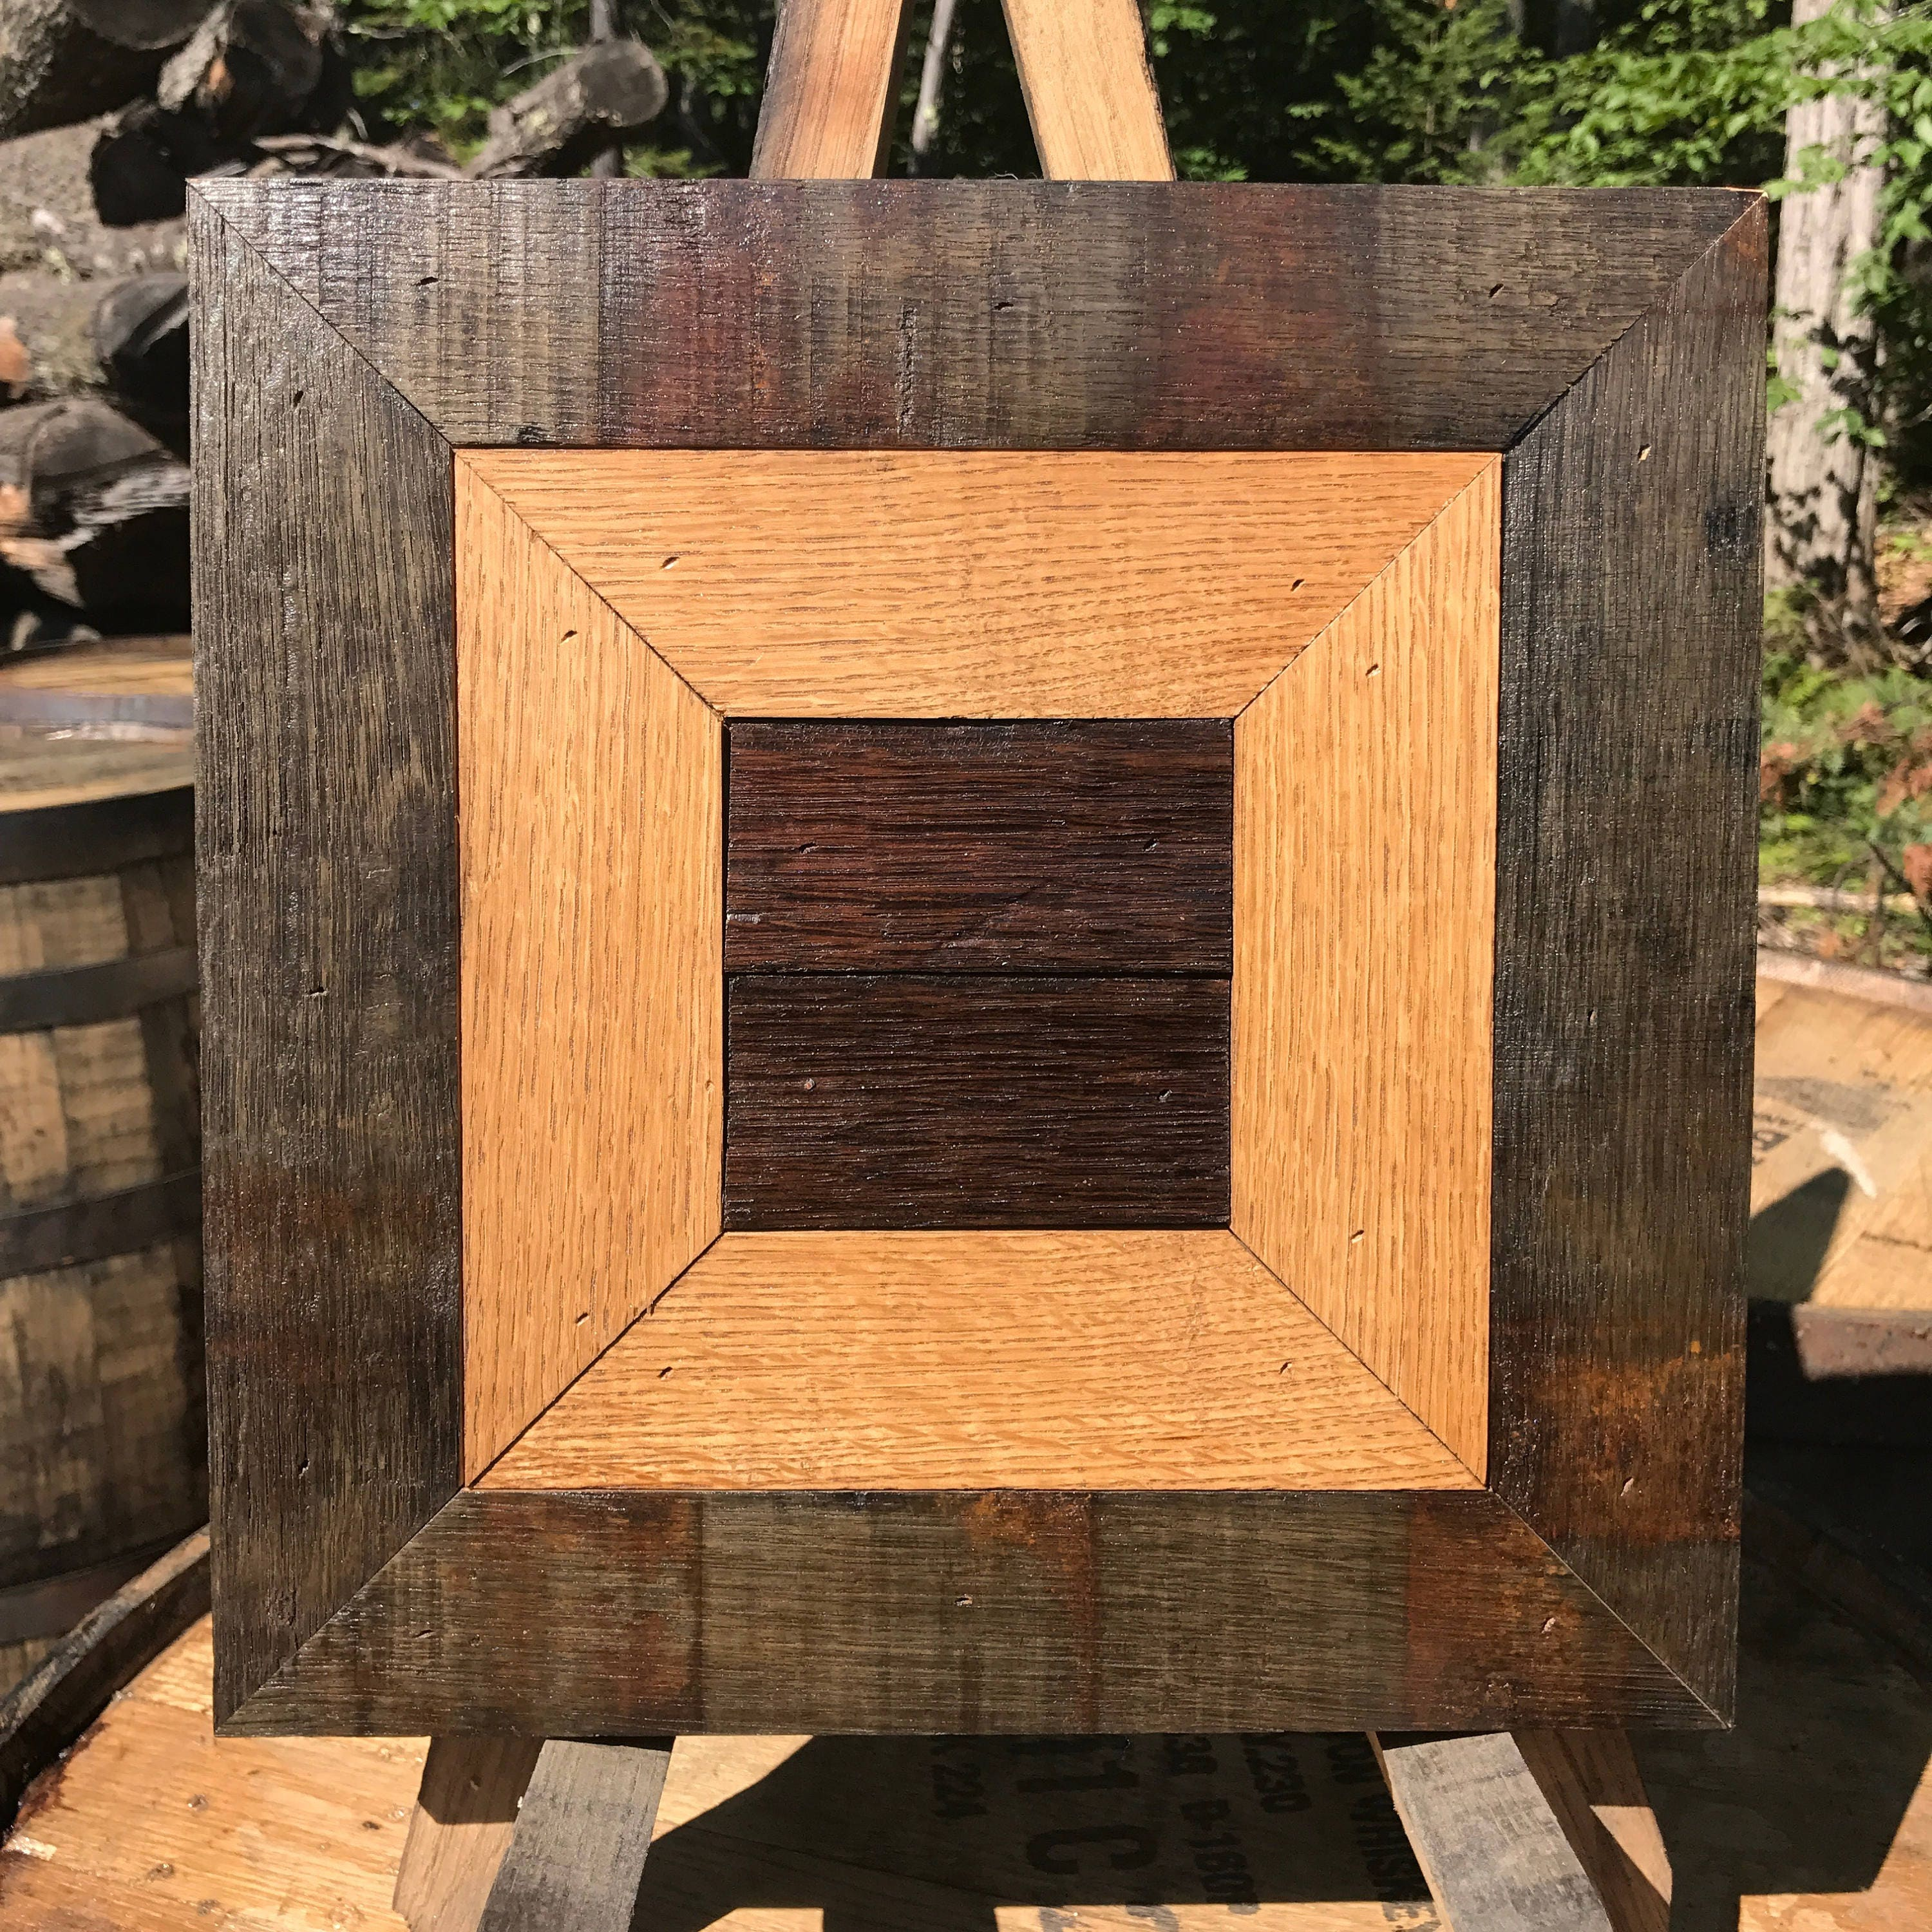 how to cut a whiskey barrel in half lengthwise